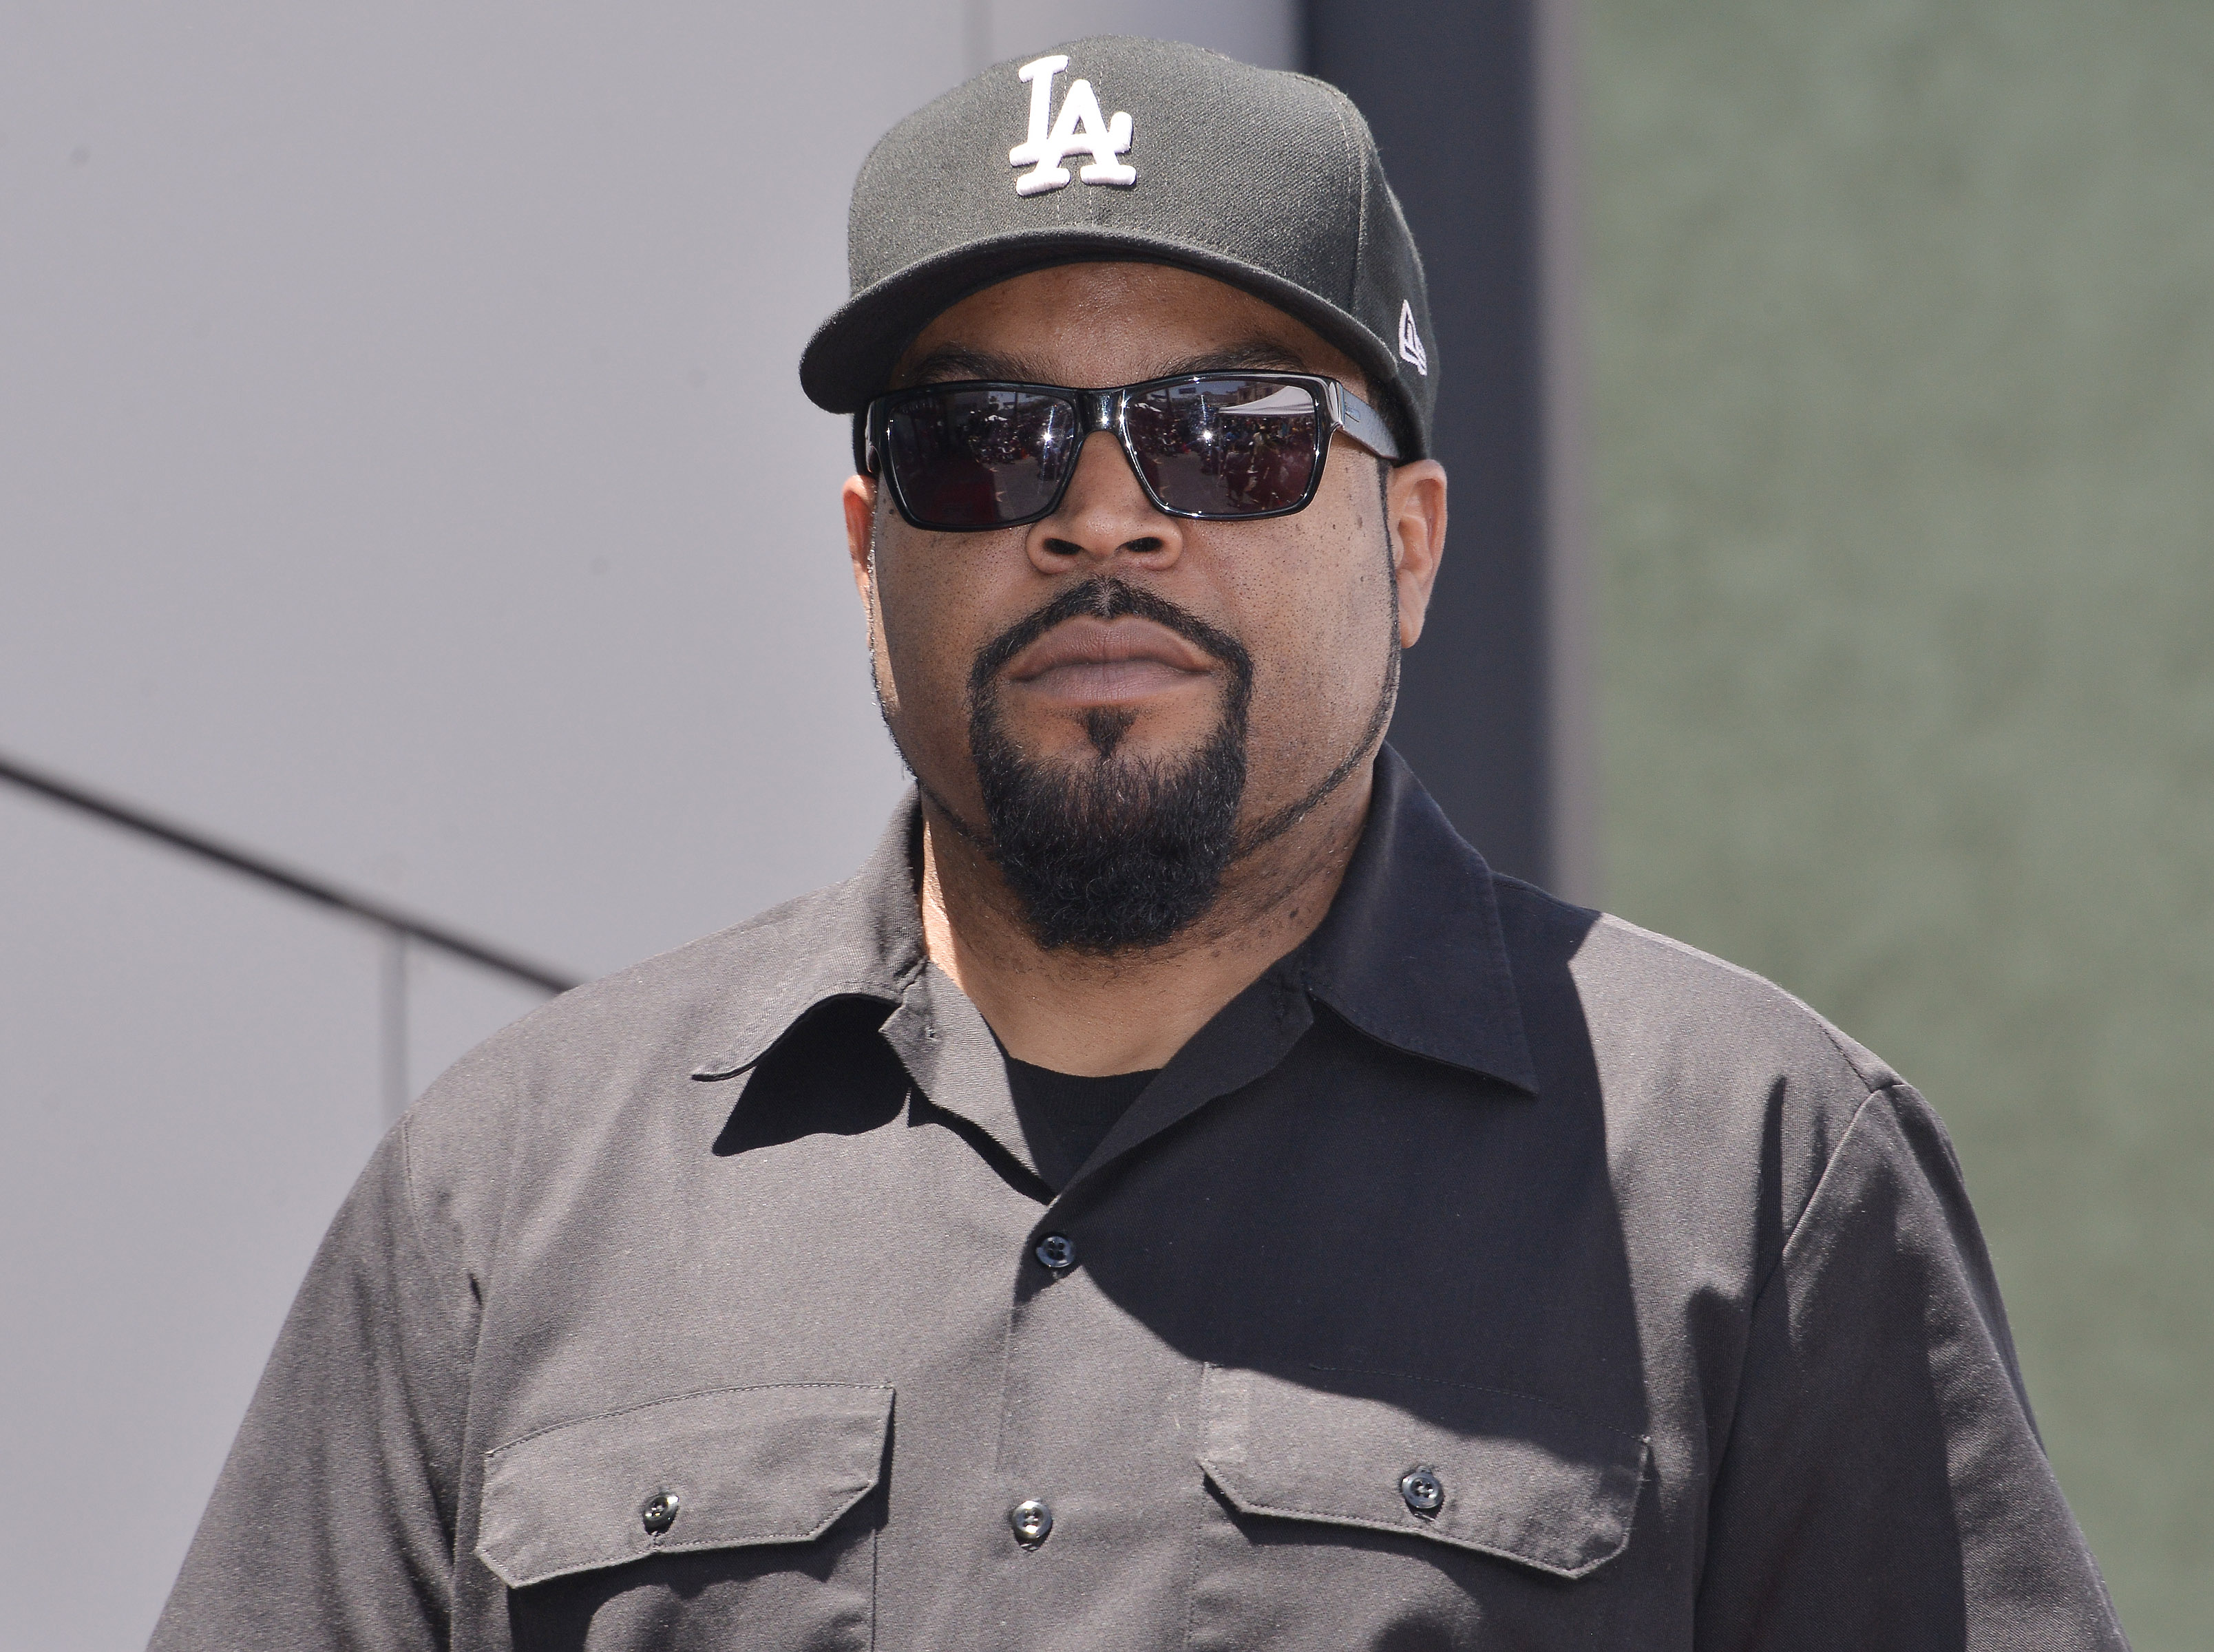 20447280-ca-ice-cube-honored-with-star-on-the-hollywood-walk-of-fame-ceremony